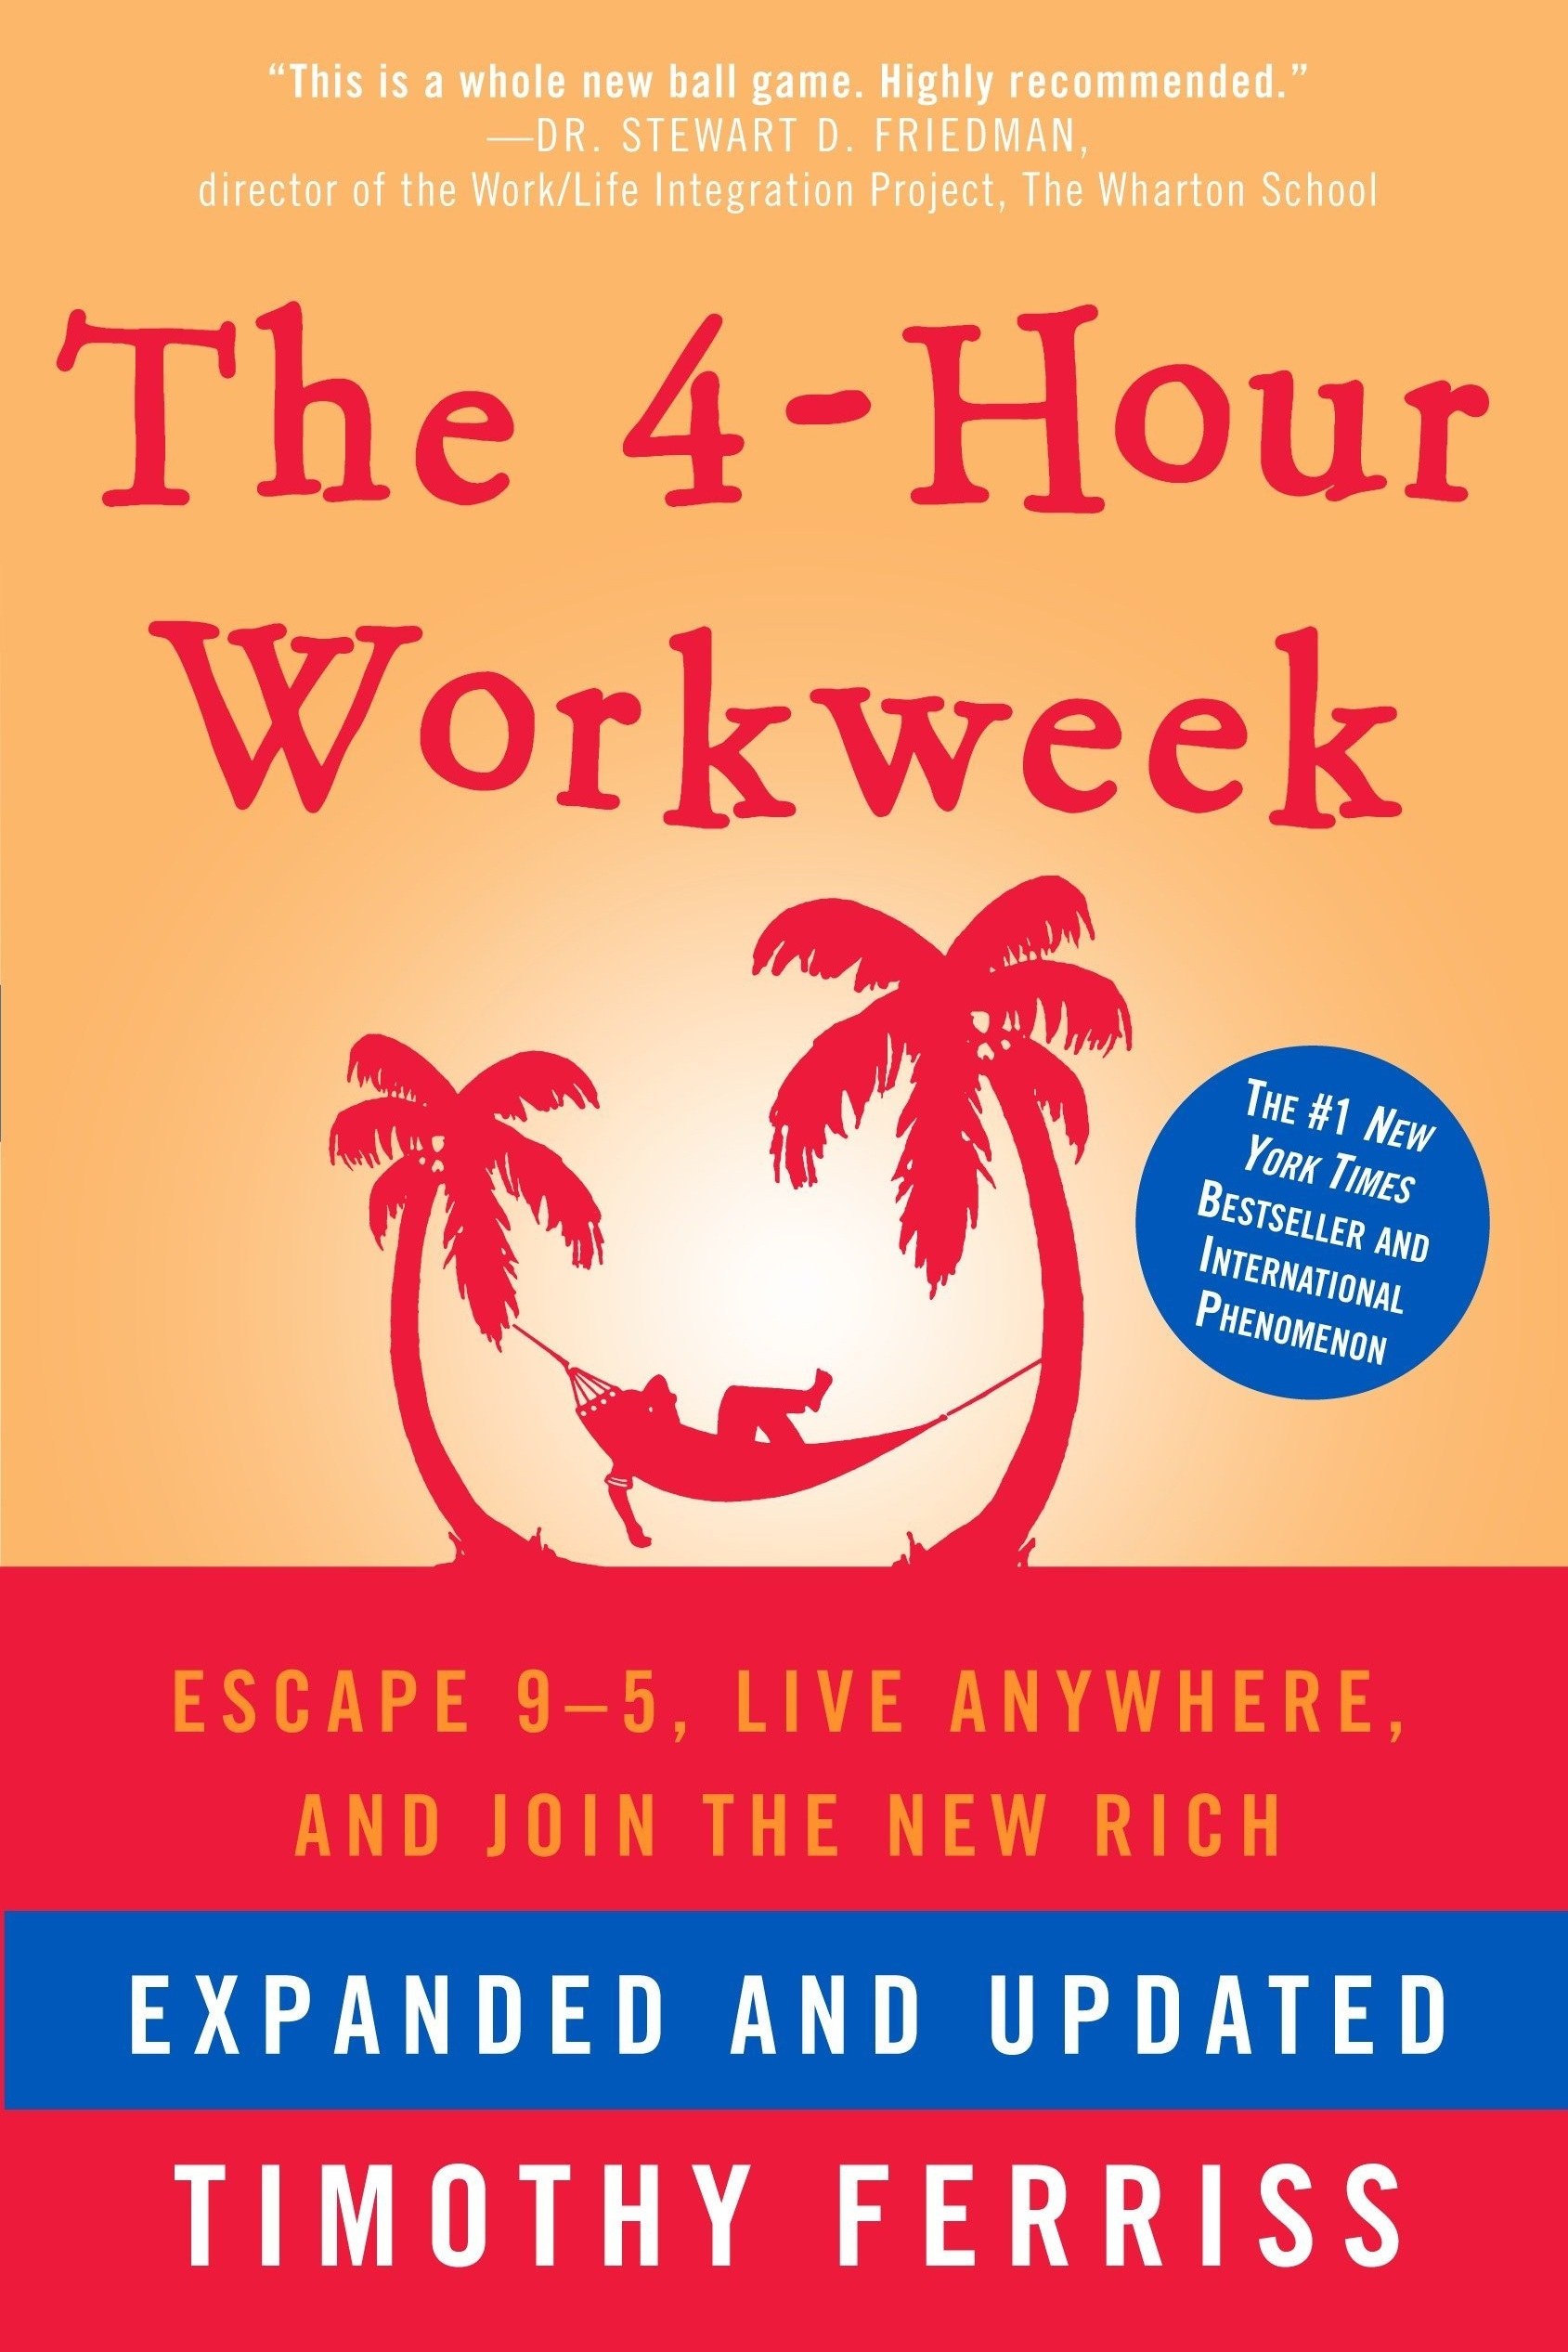 the 4-hour workweek timothy ferris.jpg